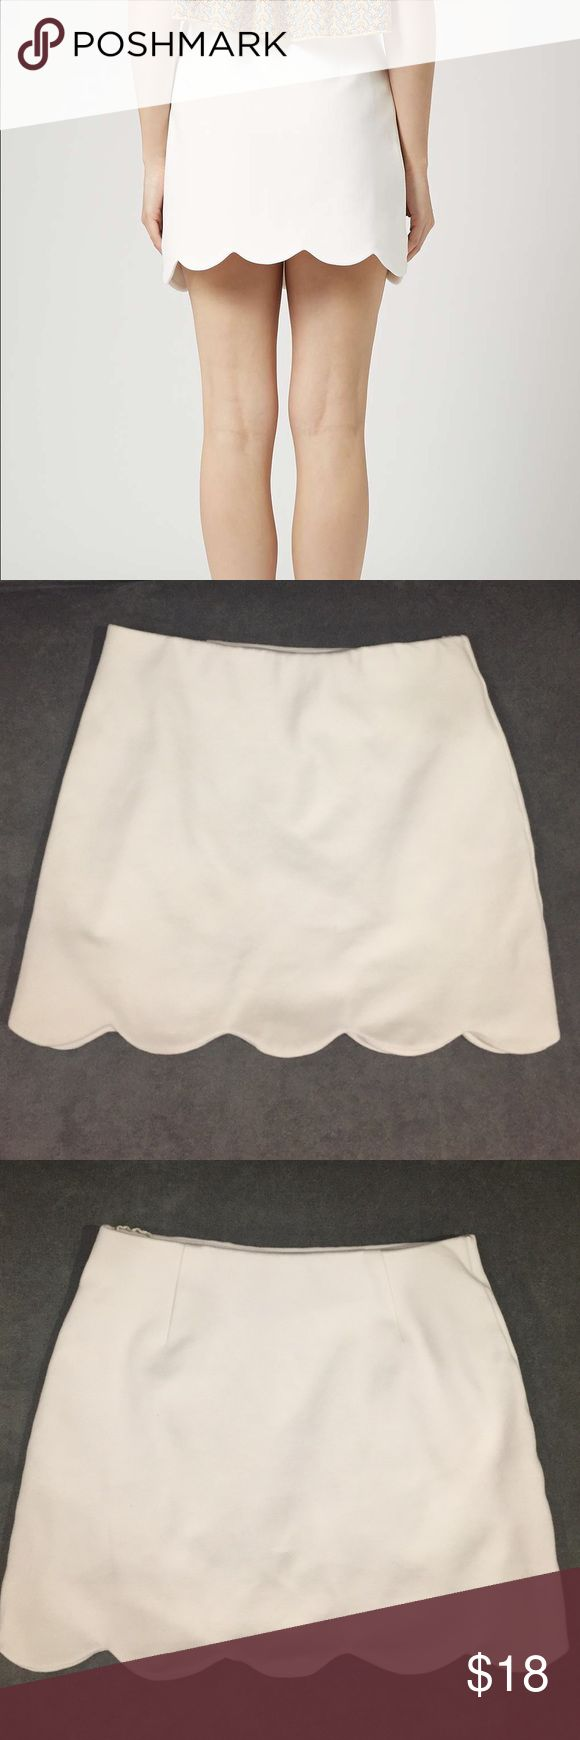 TOPSHOP skirt White scallop trimmed skirt. Size 4 but fits like a 2. Perfect condition! Topshop Skirts Mini